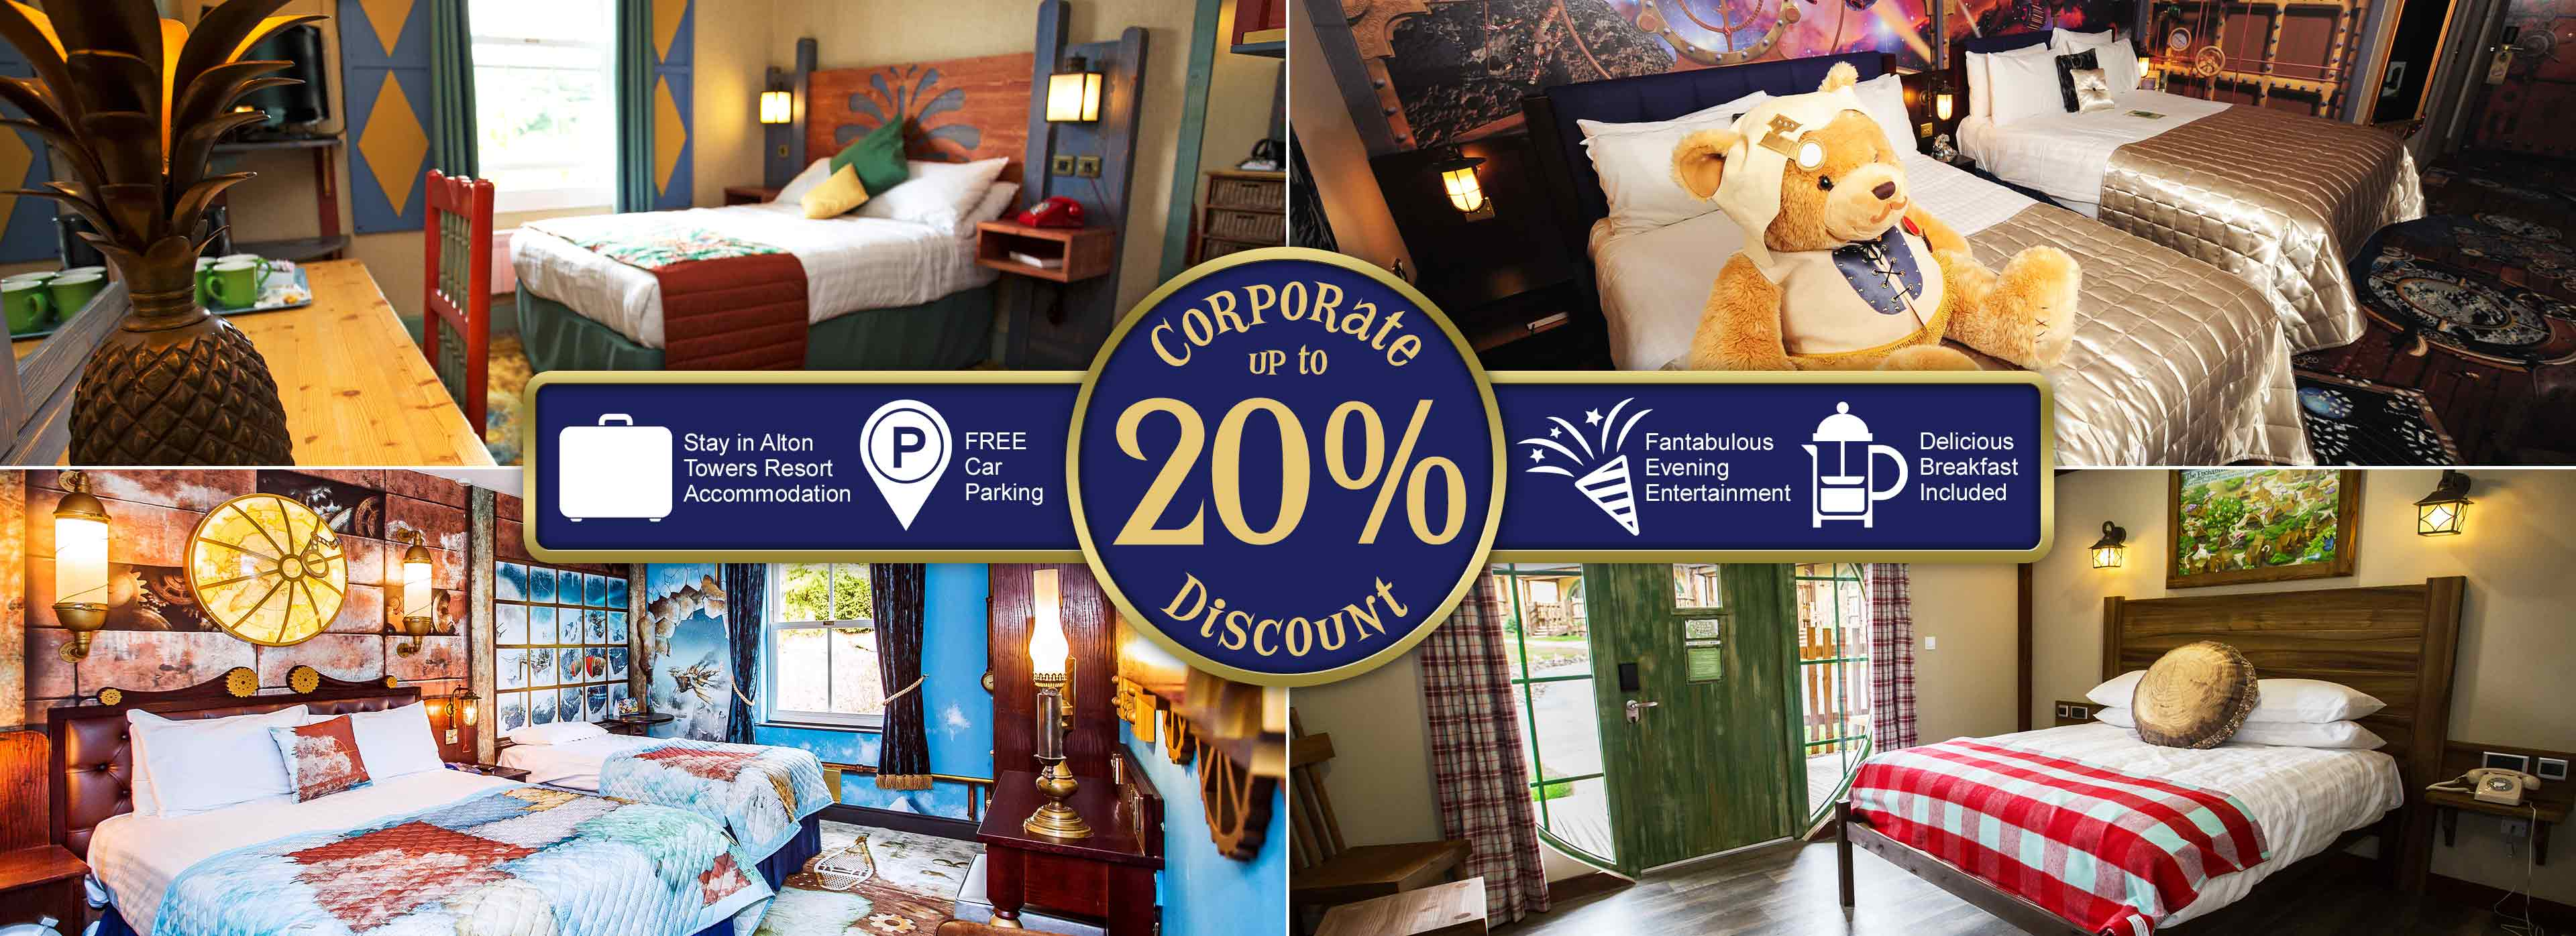 Up to 20% Corporate Discount with Alton Towers Holidays